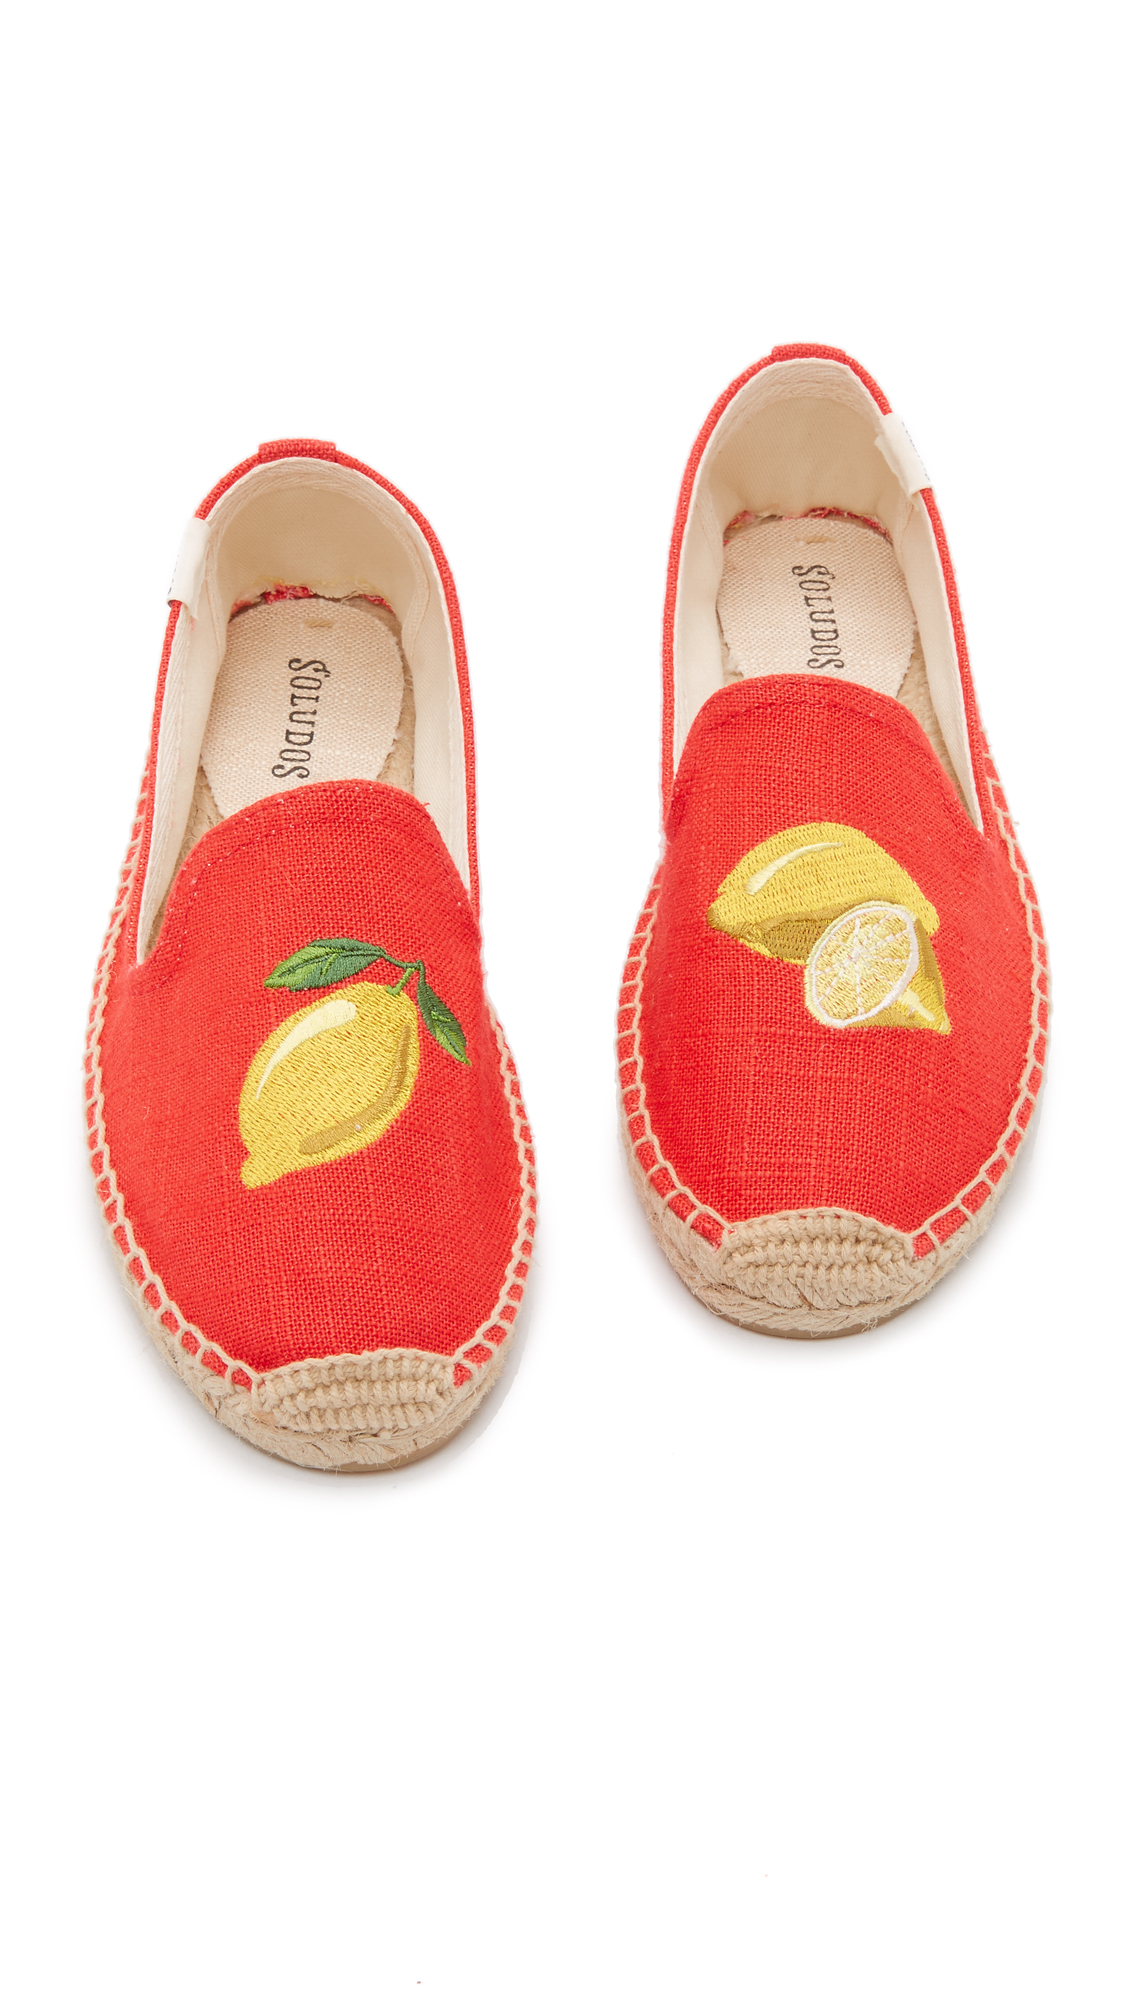 44a64eccc98 Lyst - Soludos Lemons Smoking Slipper Espadrilles in Red